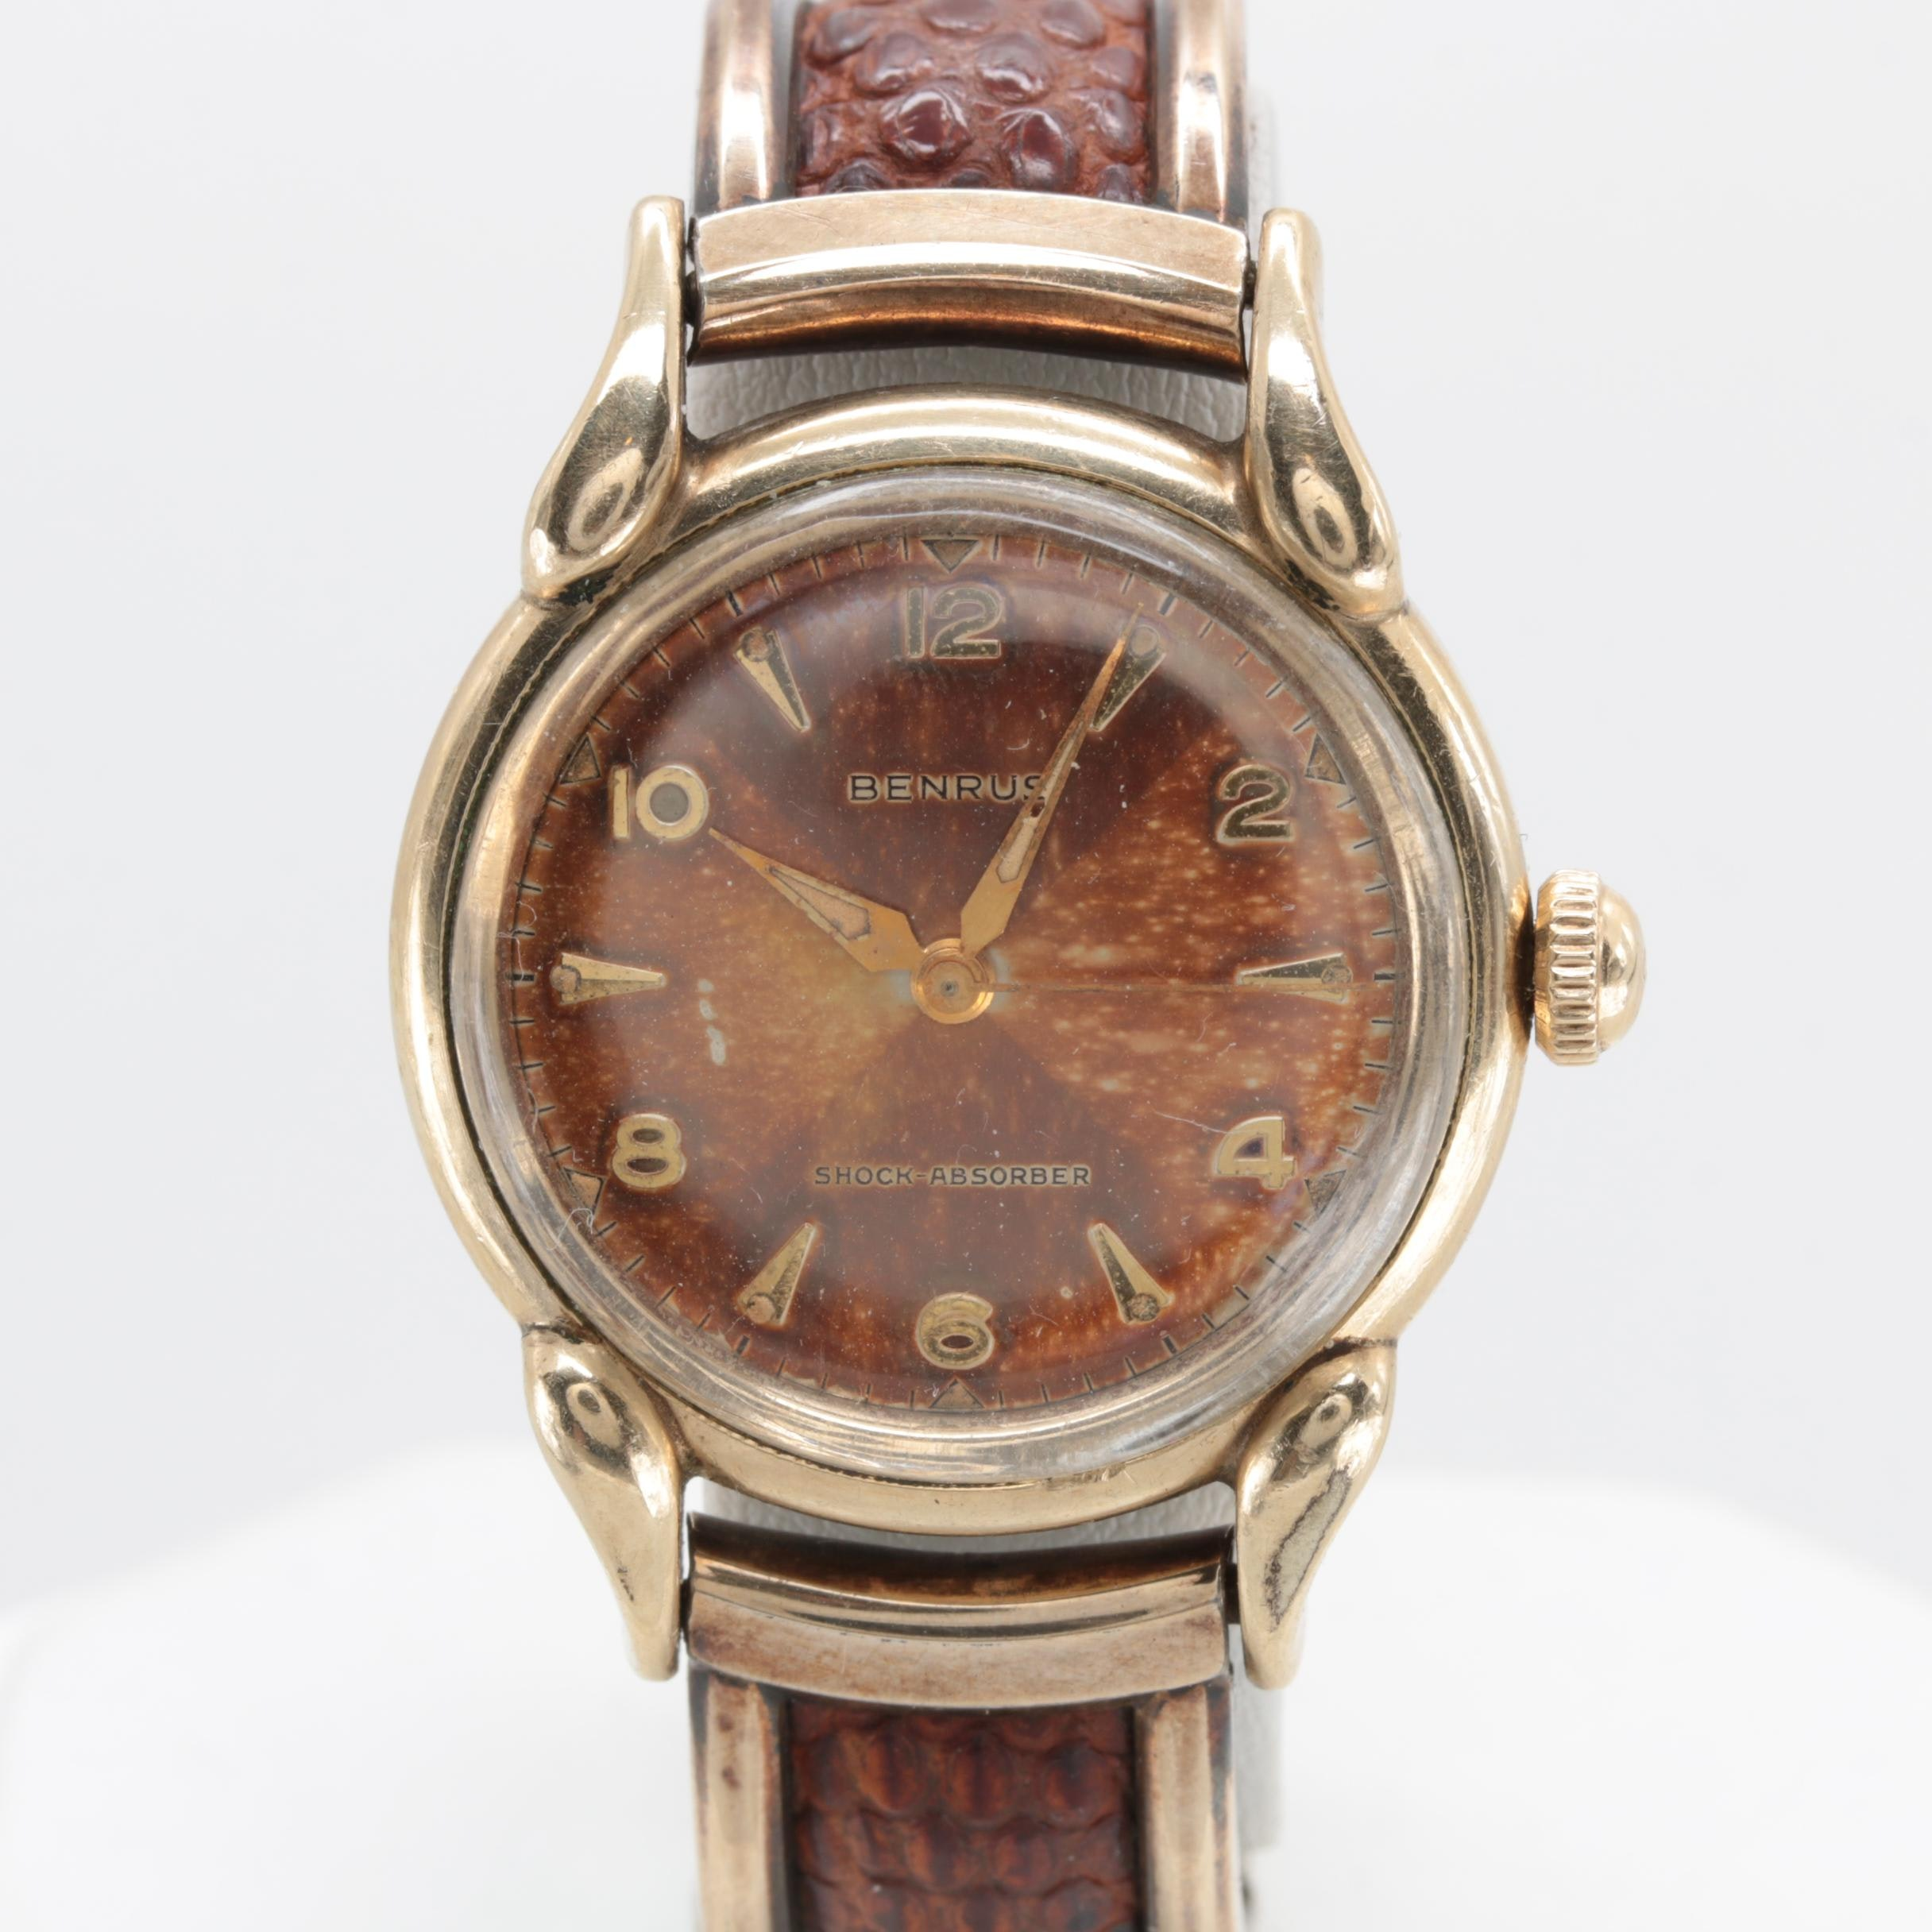 Benrus Gold Plated Wristwatch